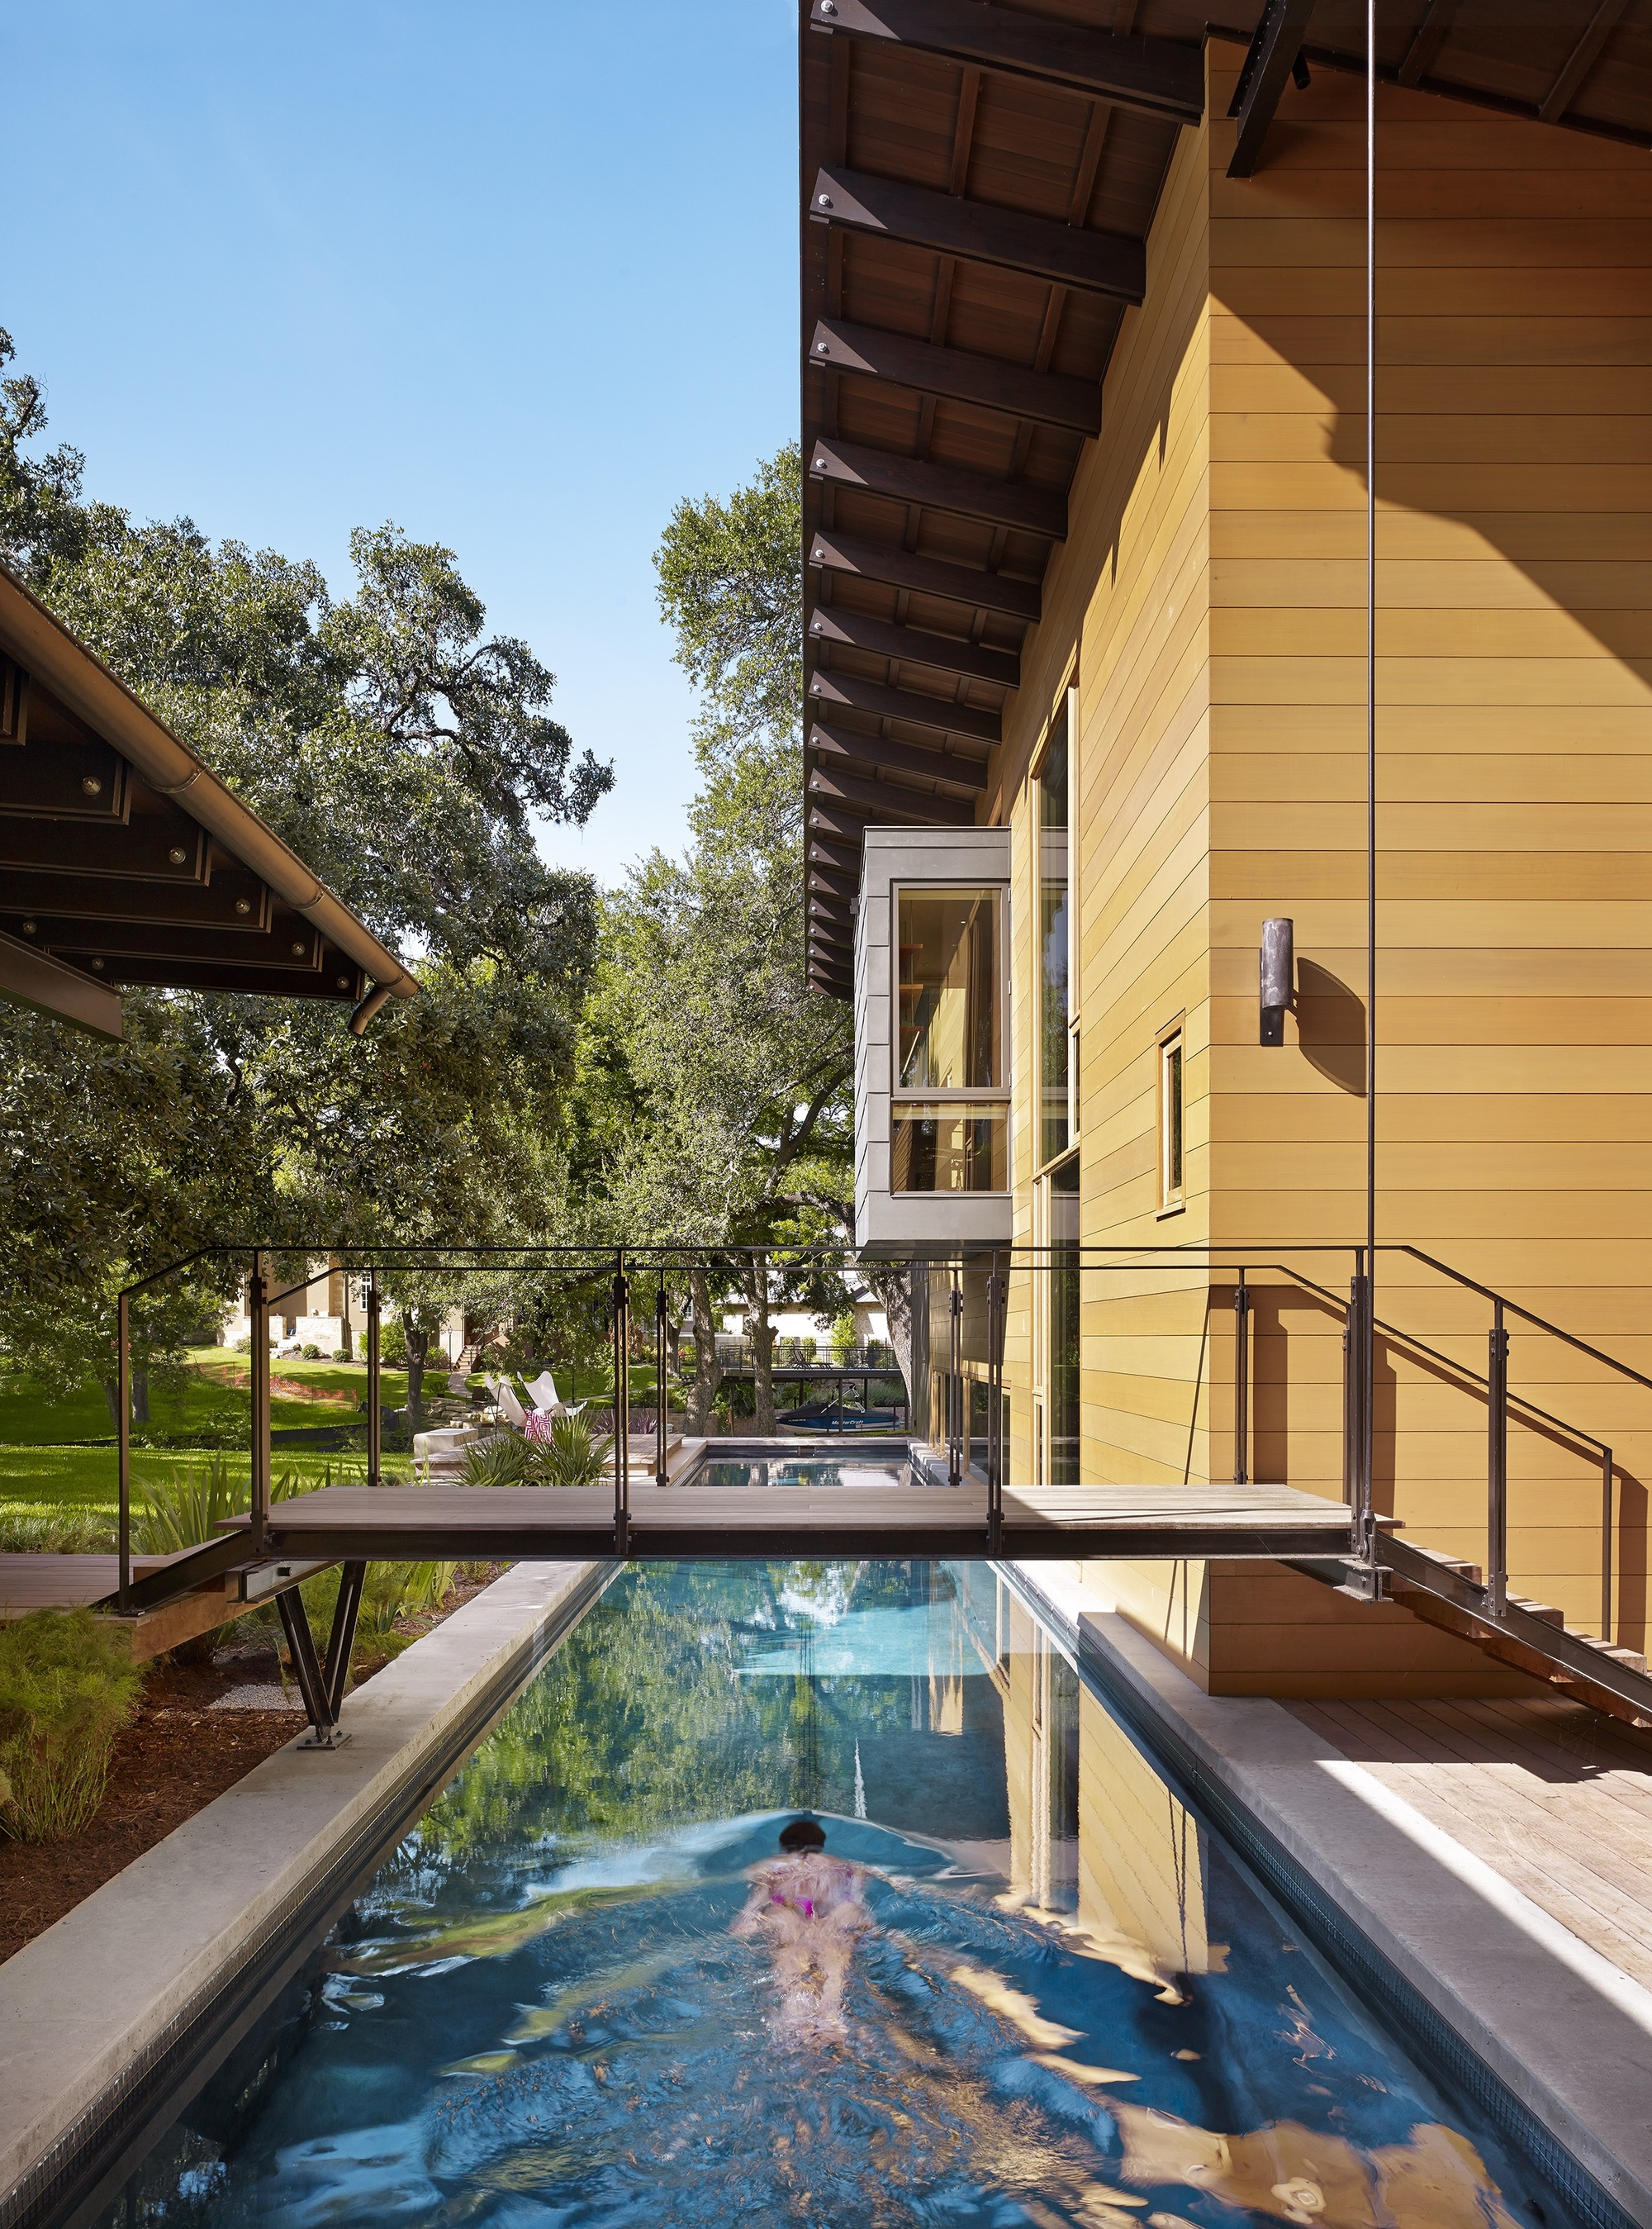 Cost to build a new house in austin - Aia Names 10 Best Us Houses Of 2016 Custom Housing Hog Pen Creek Retreat